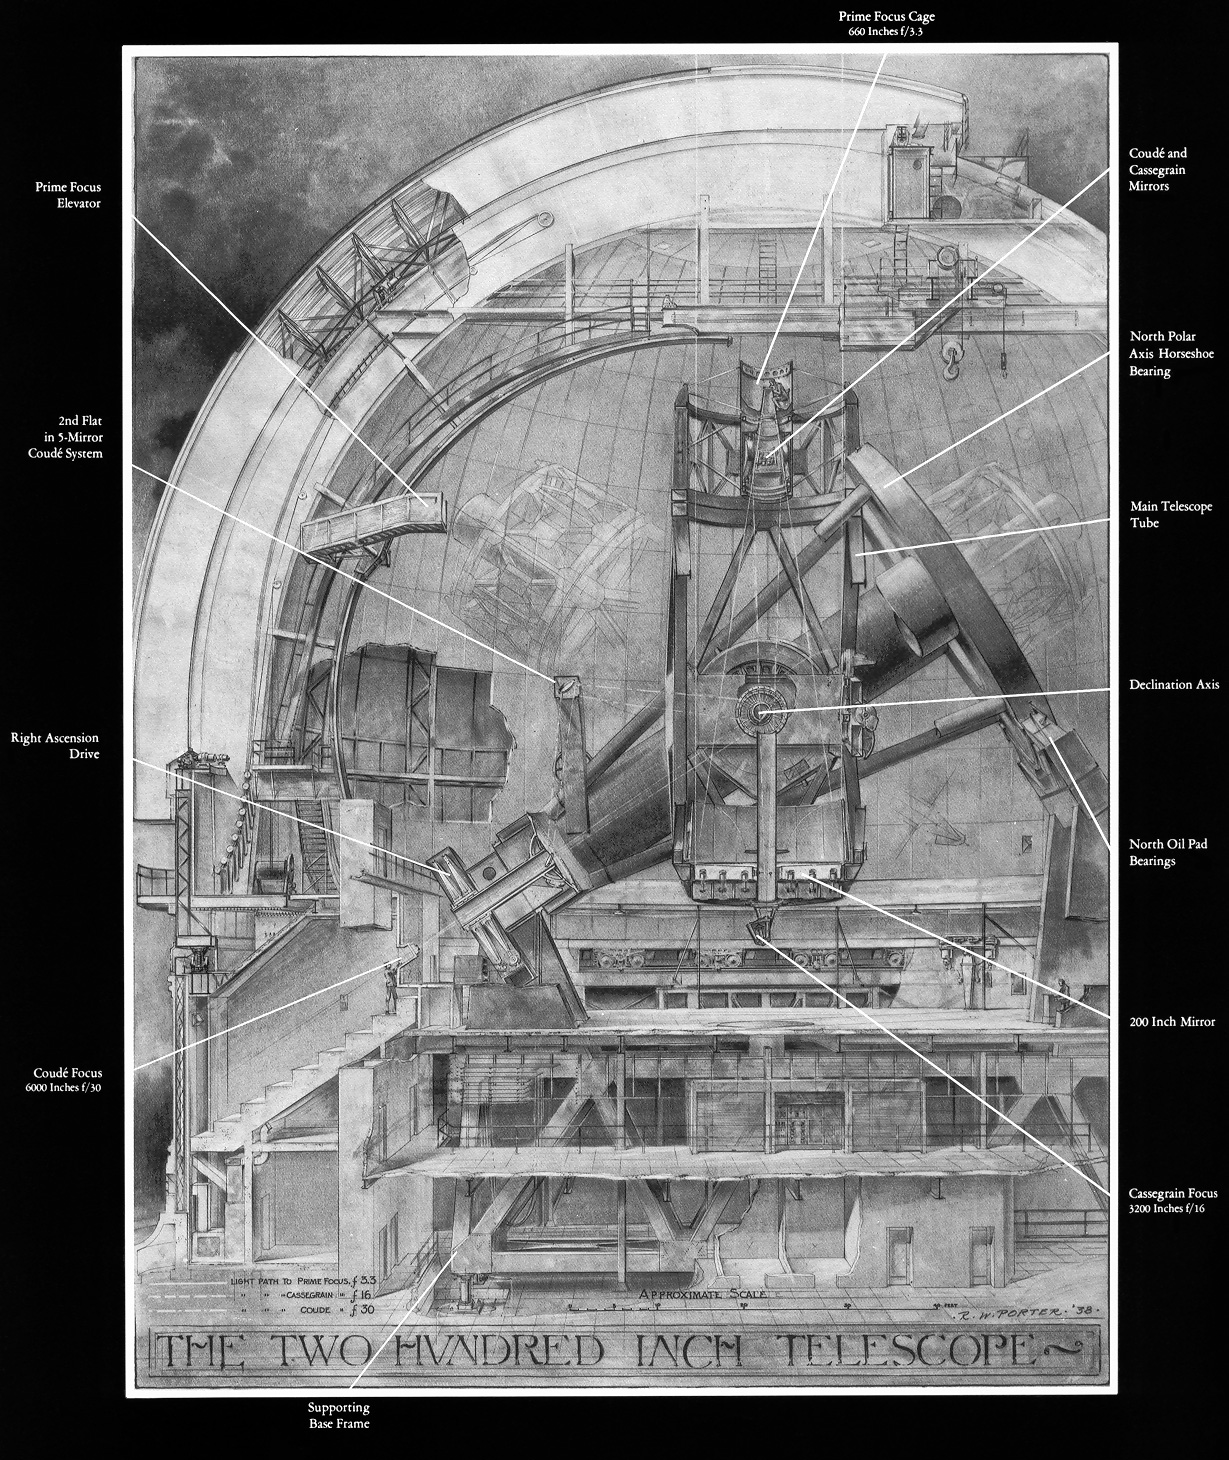 The 200 Inch Hale Telescope Oem Replacementparts Seen In This Diagram See Fiche Here Mirror And Foci